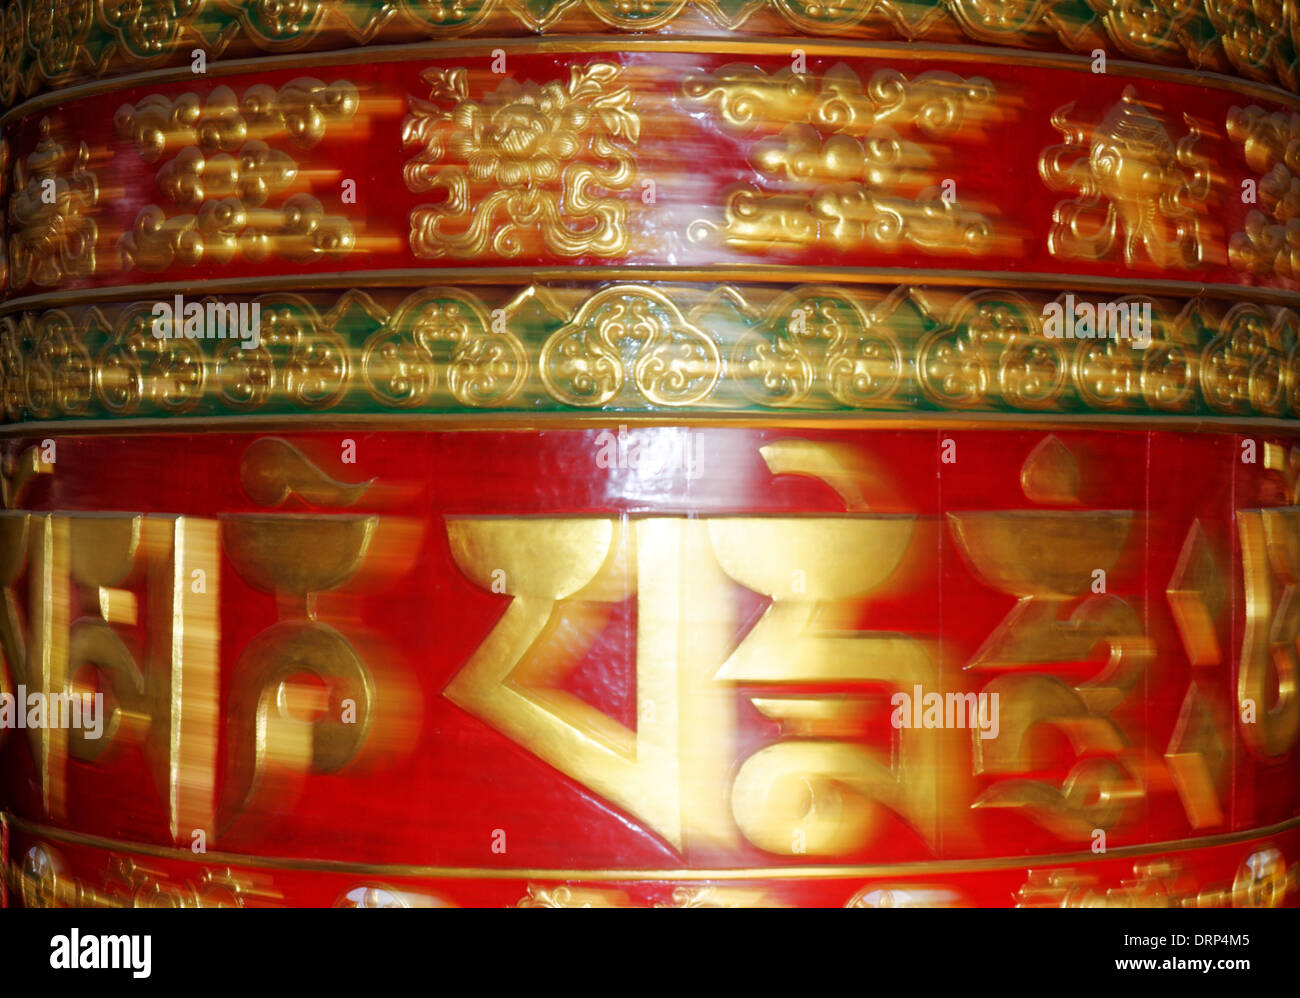 Spinning prayer wheel in Nepal - Stock Image